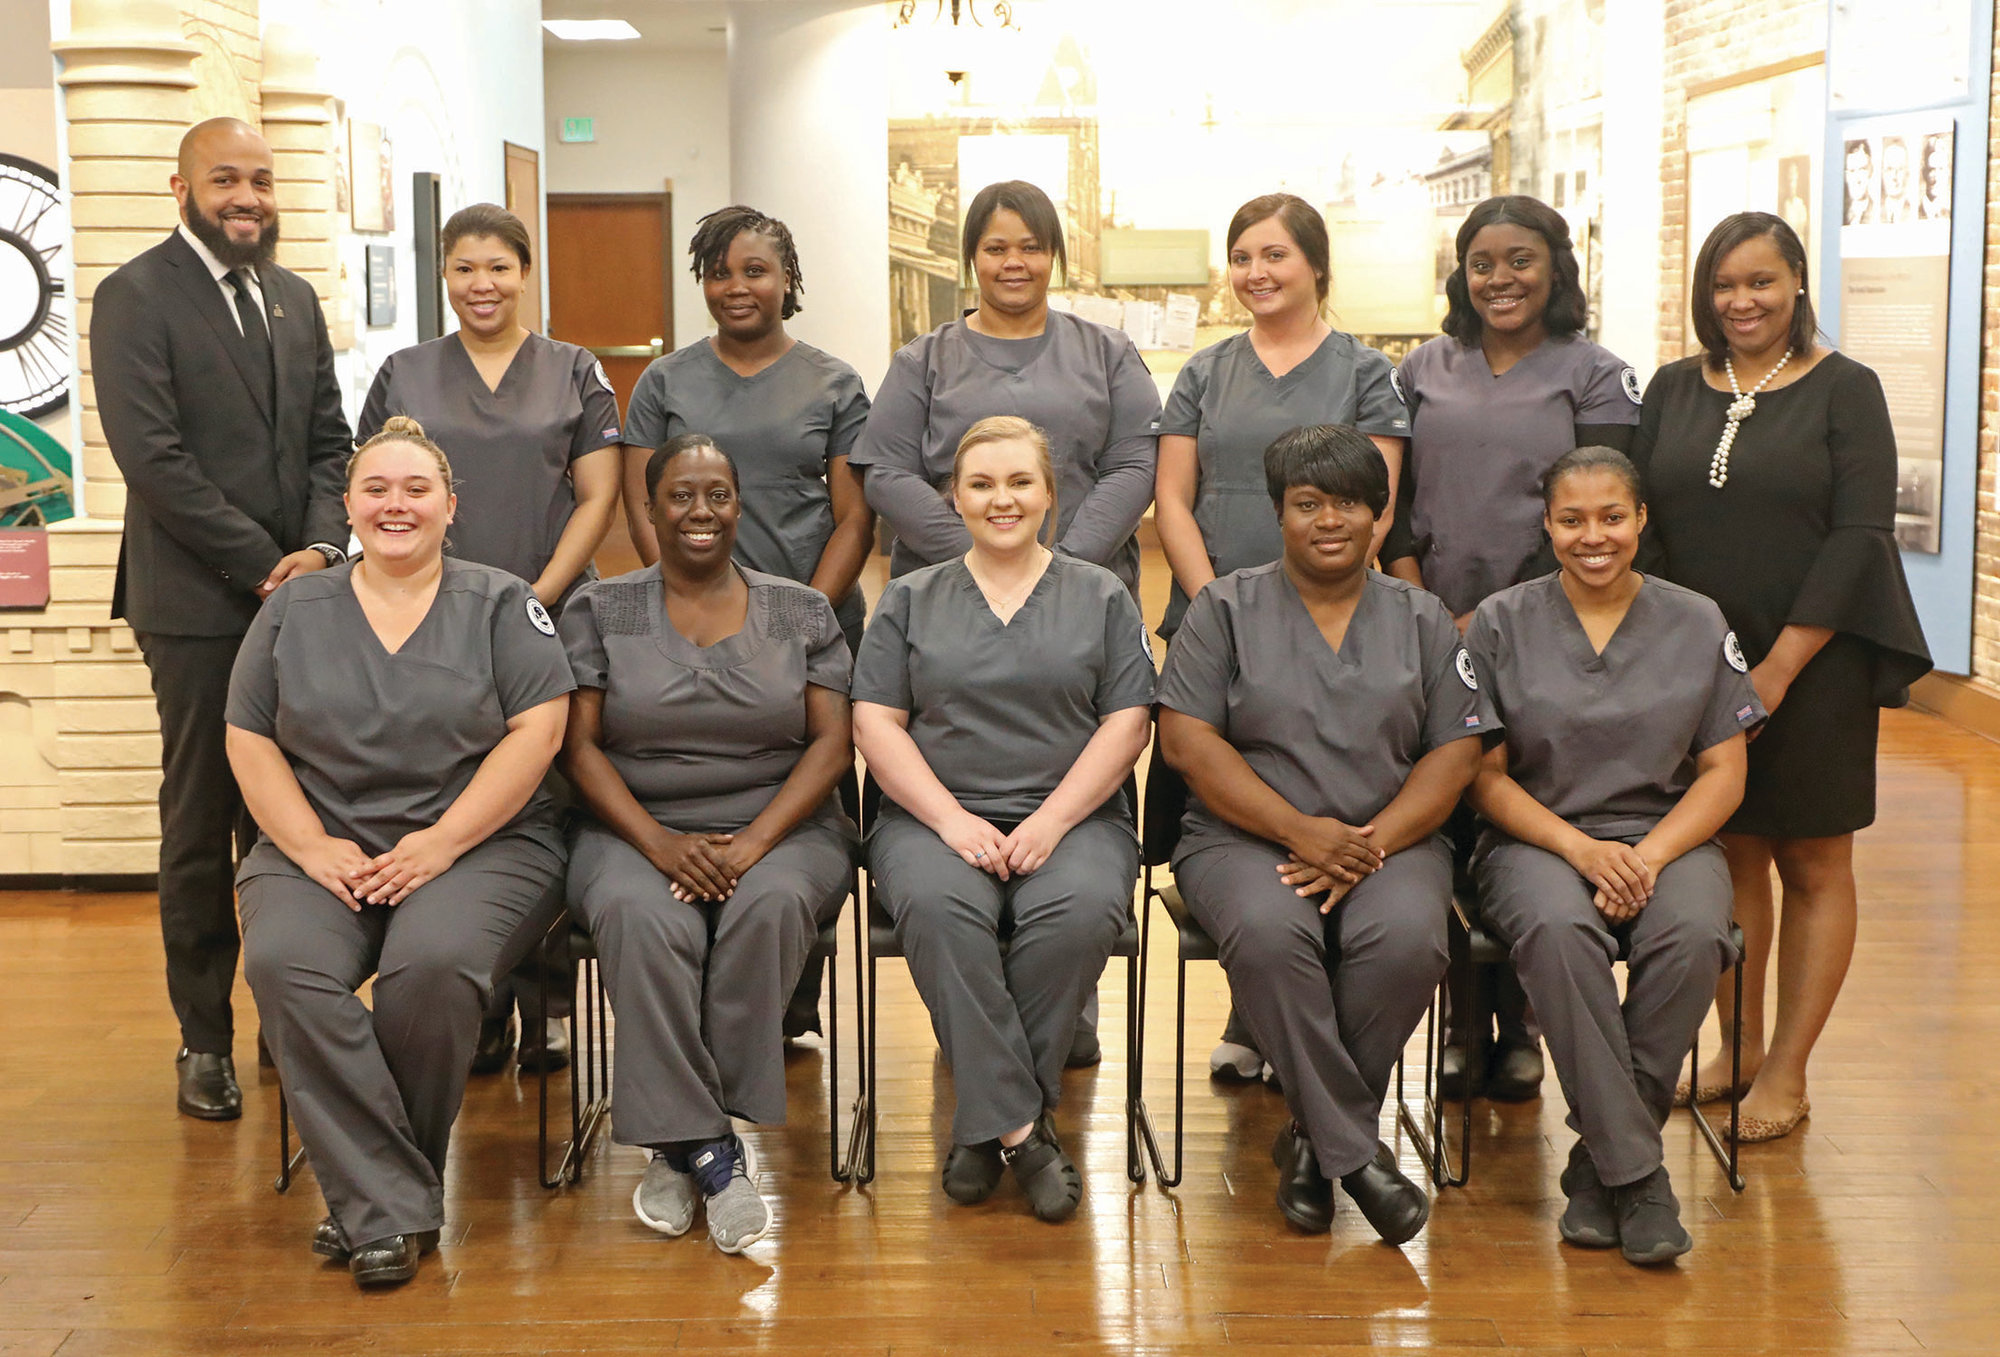 Central Carolina Technical College pins 10 pharmacy technicians at a ceremony held on May 9 at the Sumter Opera House.